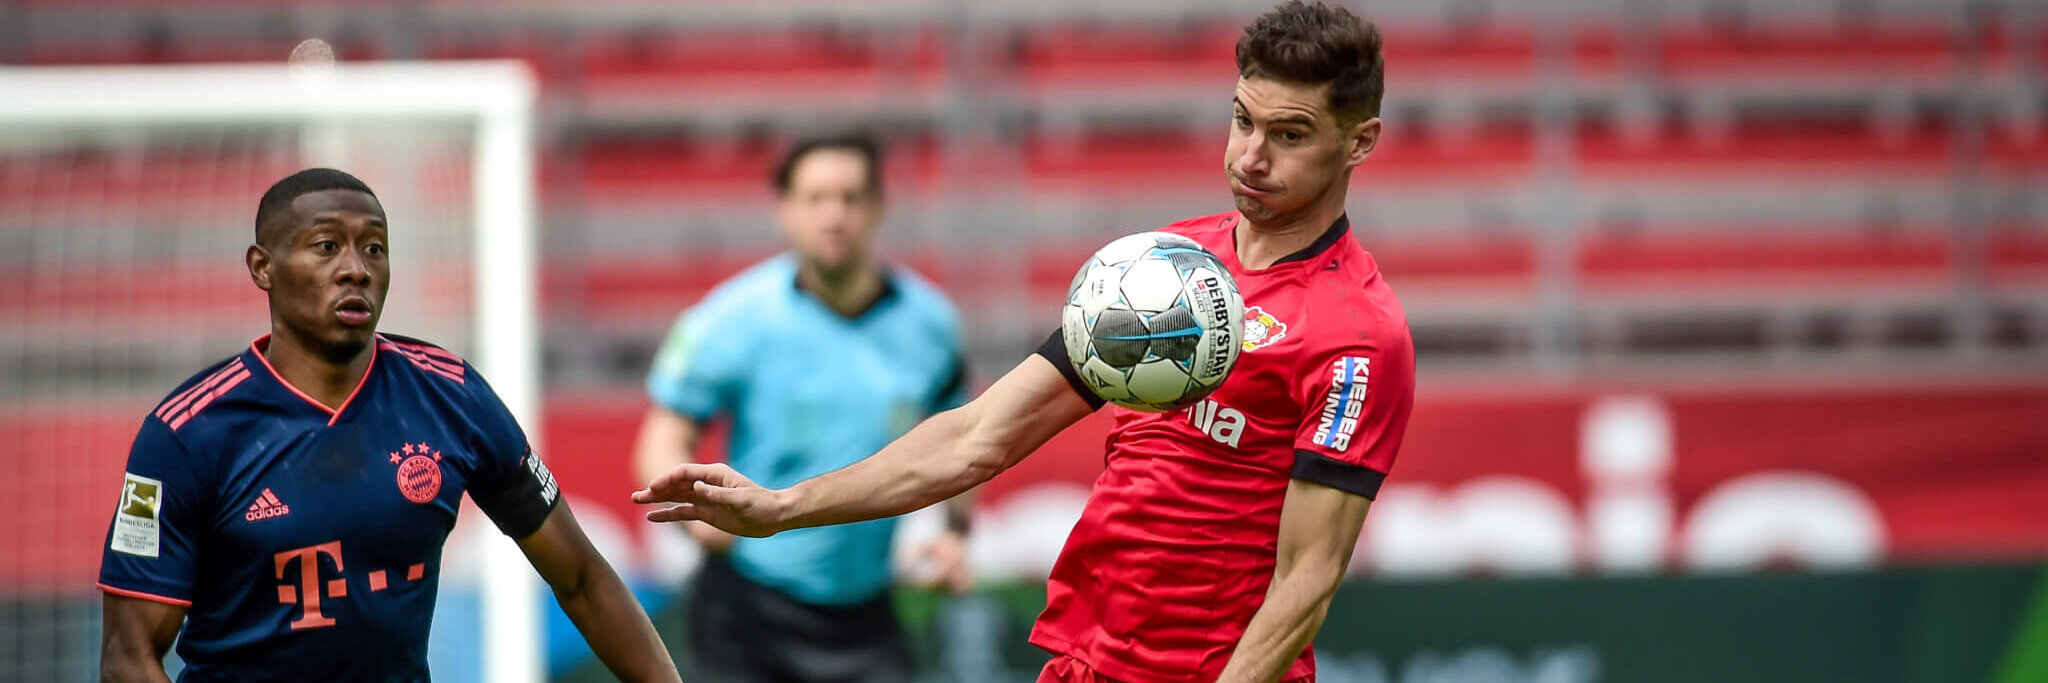 Leverkusen Vs FC Saarbrucken Game Info | DFB-Pokal Semifinals